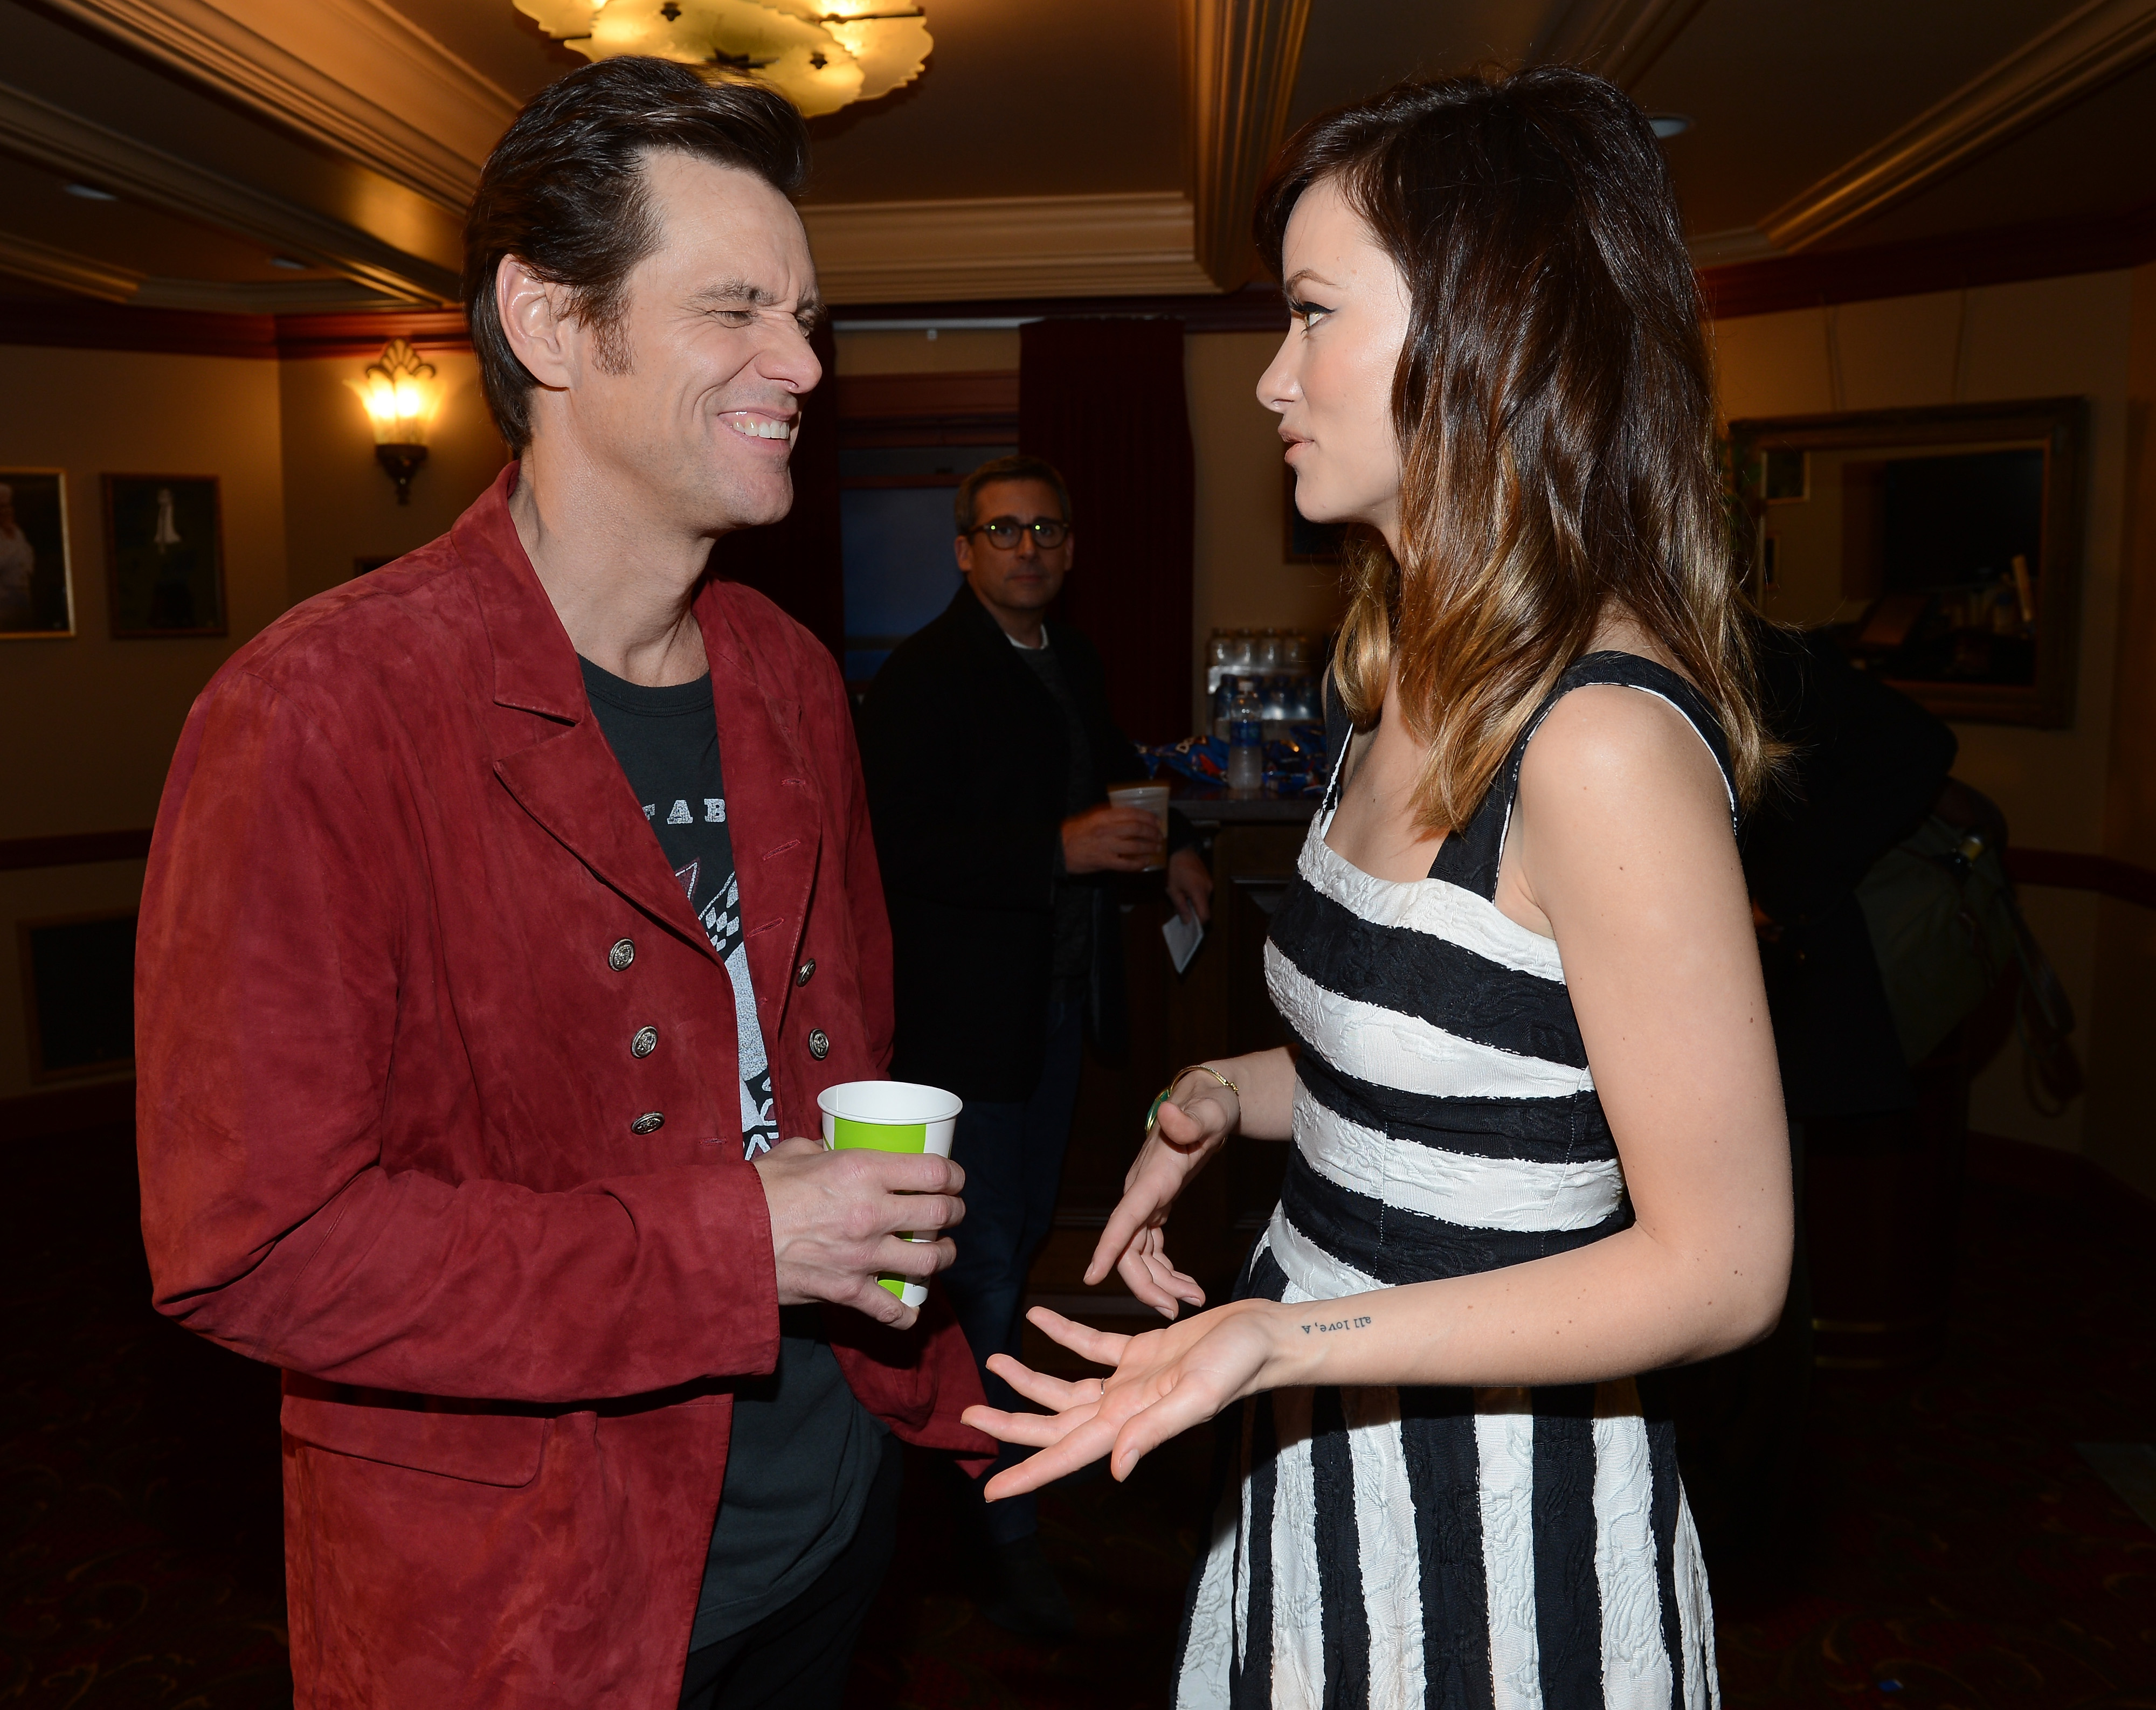 Jim Carrey and Olivia Wilde chatted at the 2013 SXSW Music, Film + Interactive Festival in Texas.